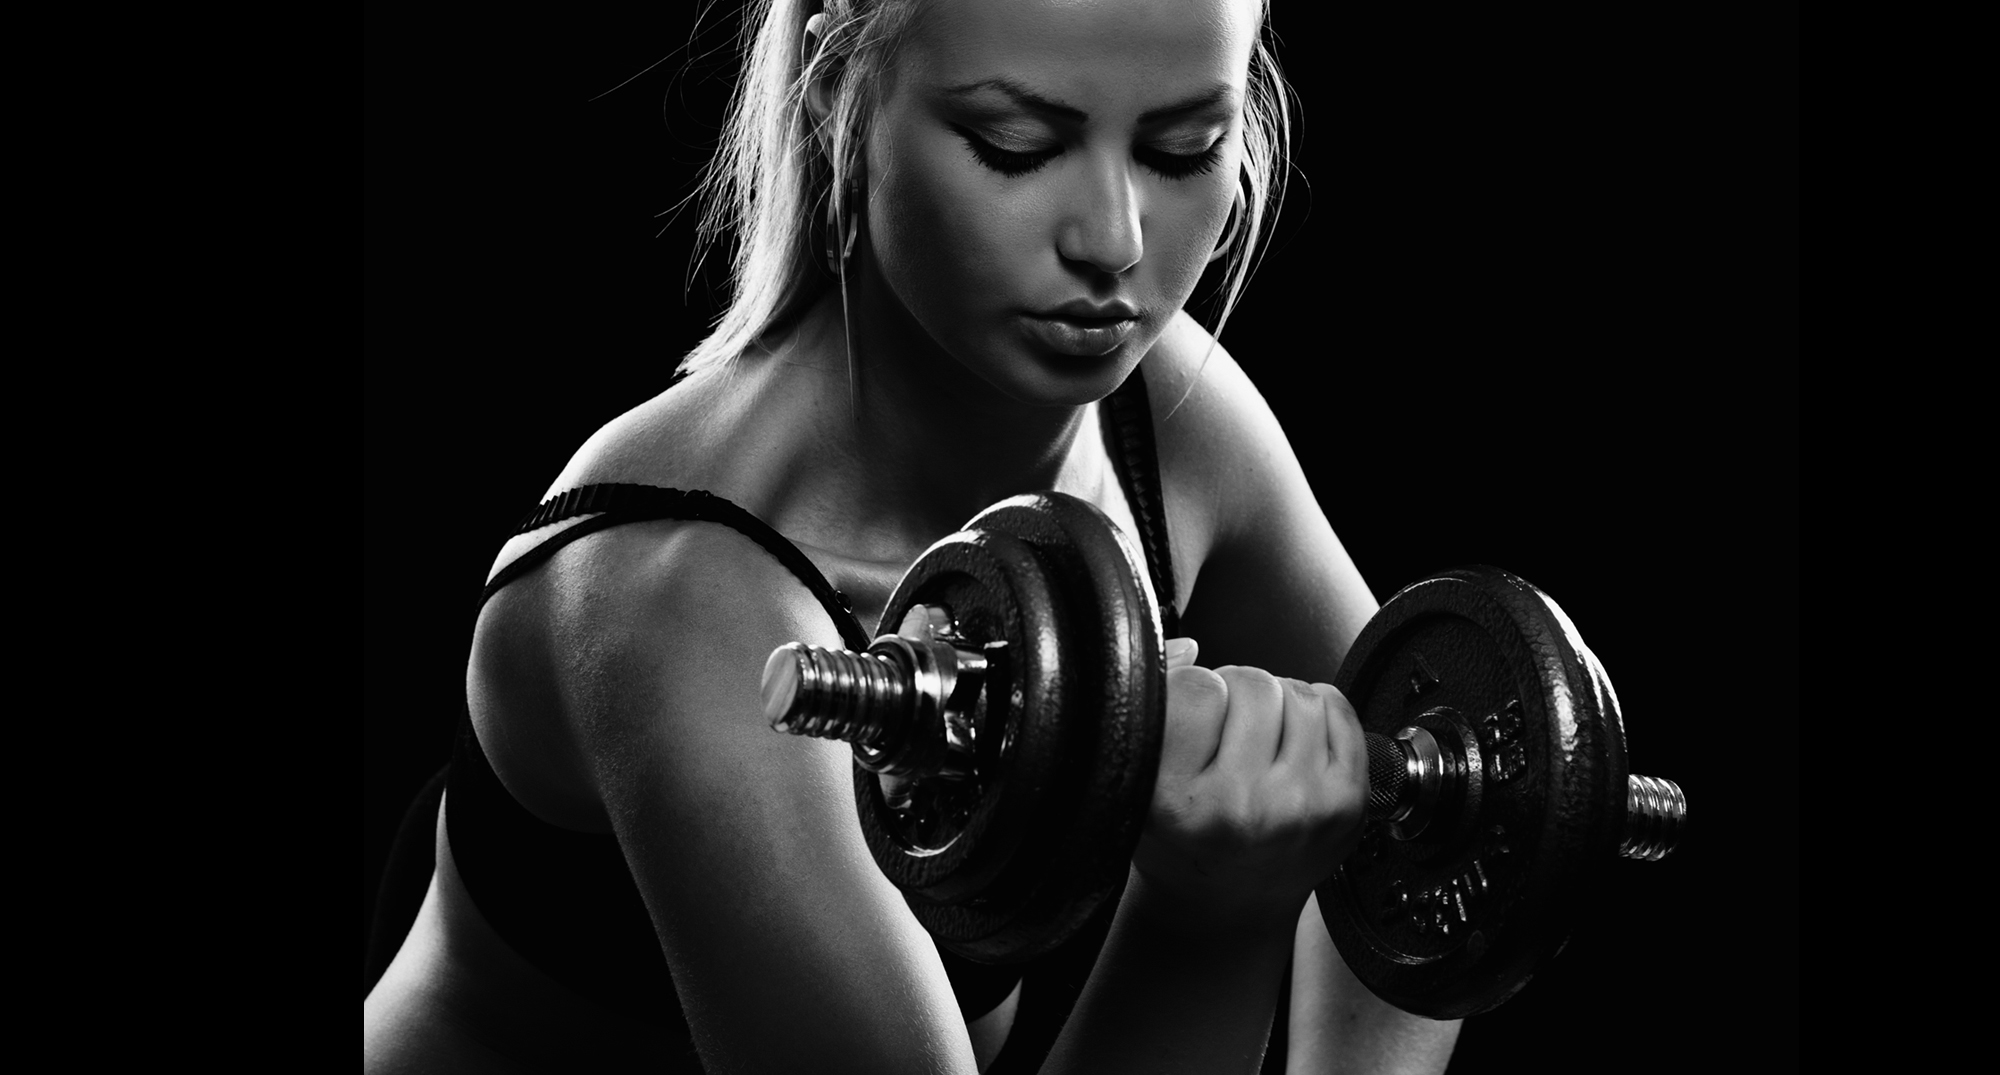 Fitness: Are You Setting Yourself Up for Fitness Failure?